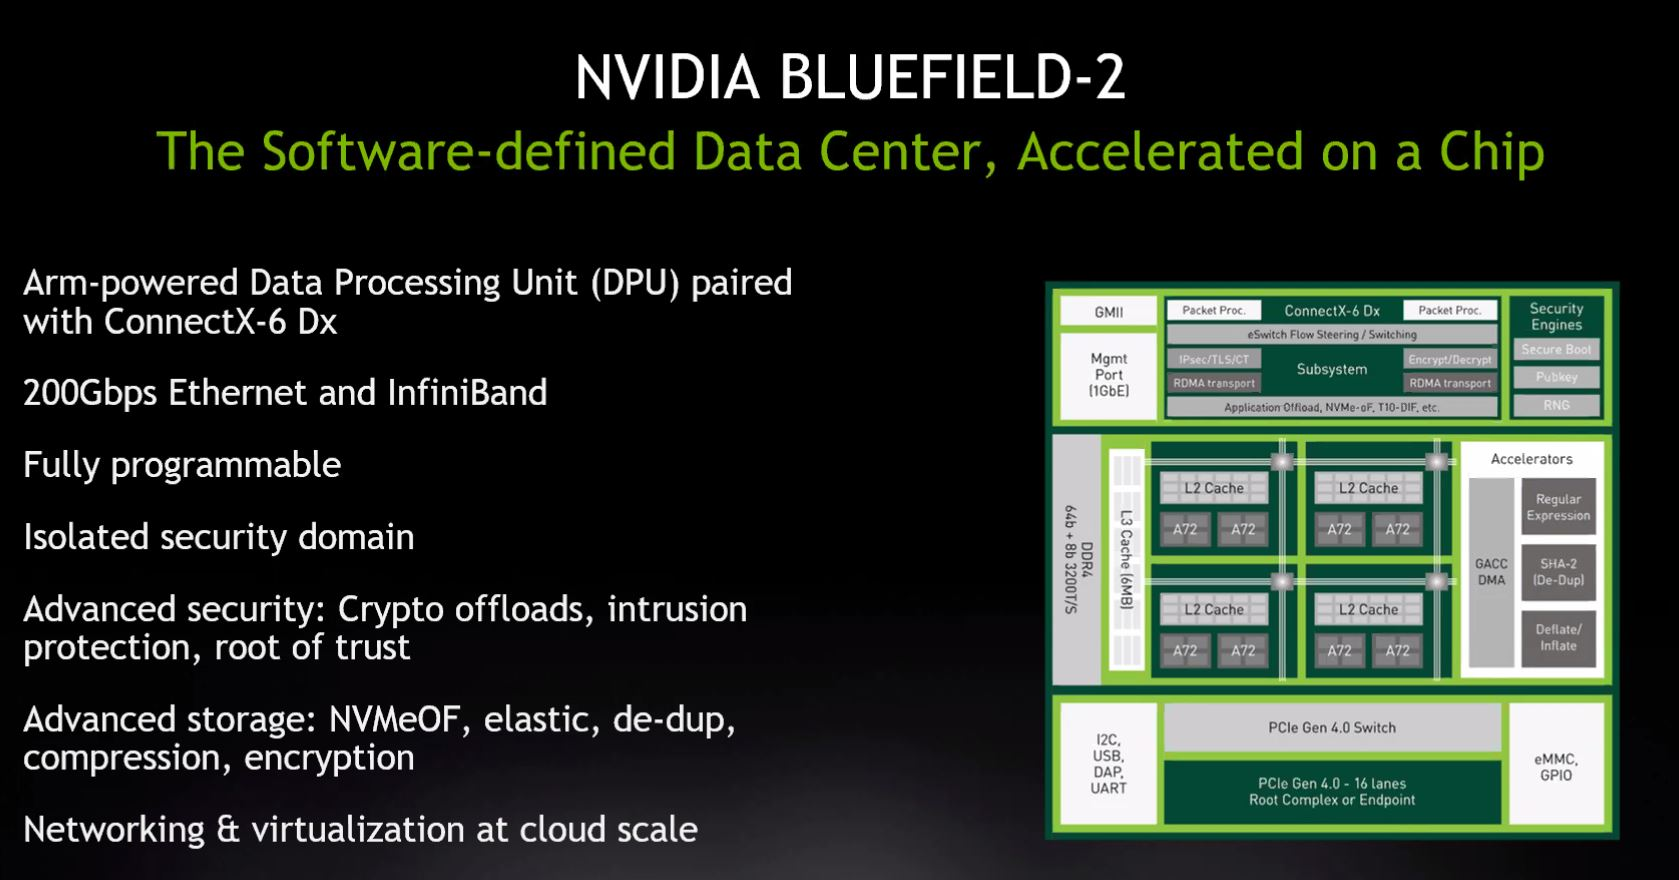 VMware VMworld 2020 Project Monterey DPU With NVIDIA BlueField 2